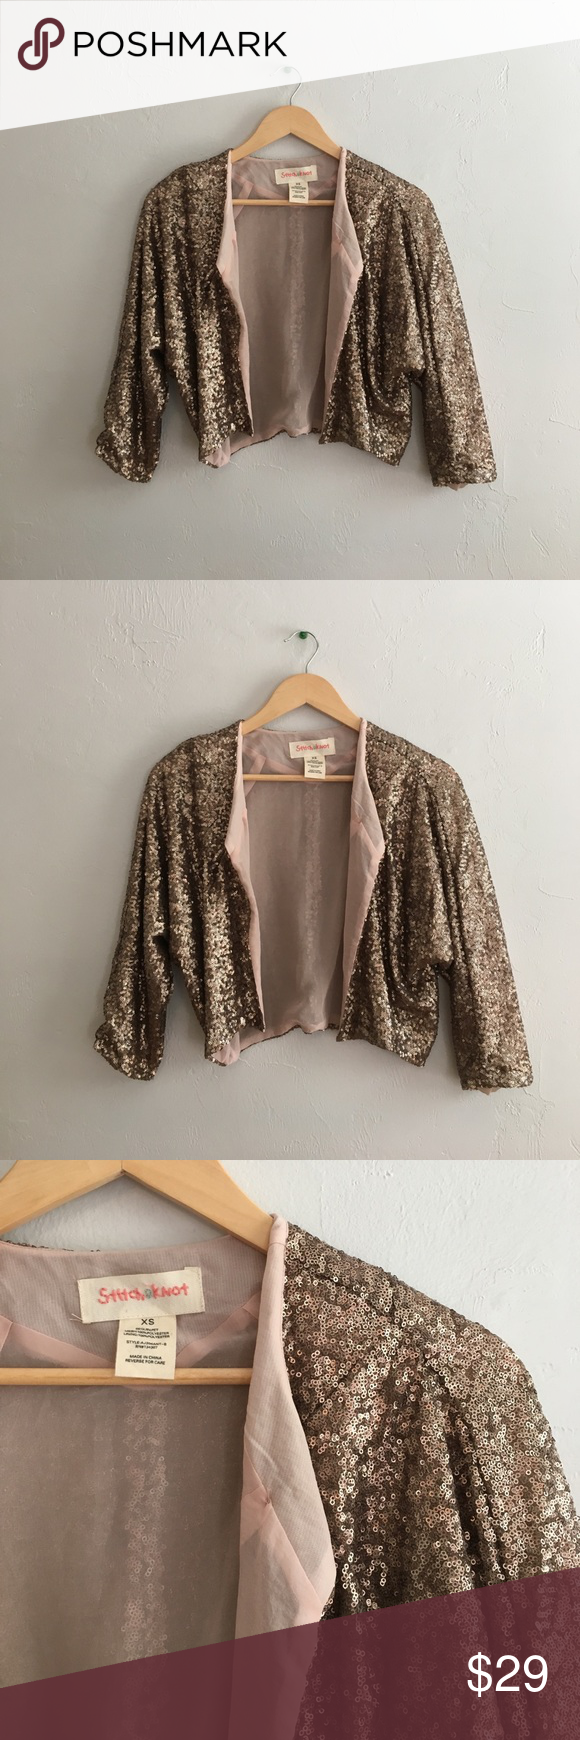 Gold Sequin Shrug Sz XS